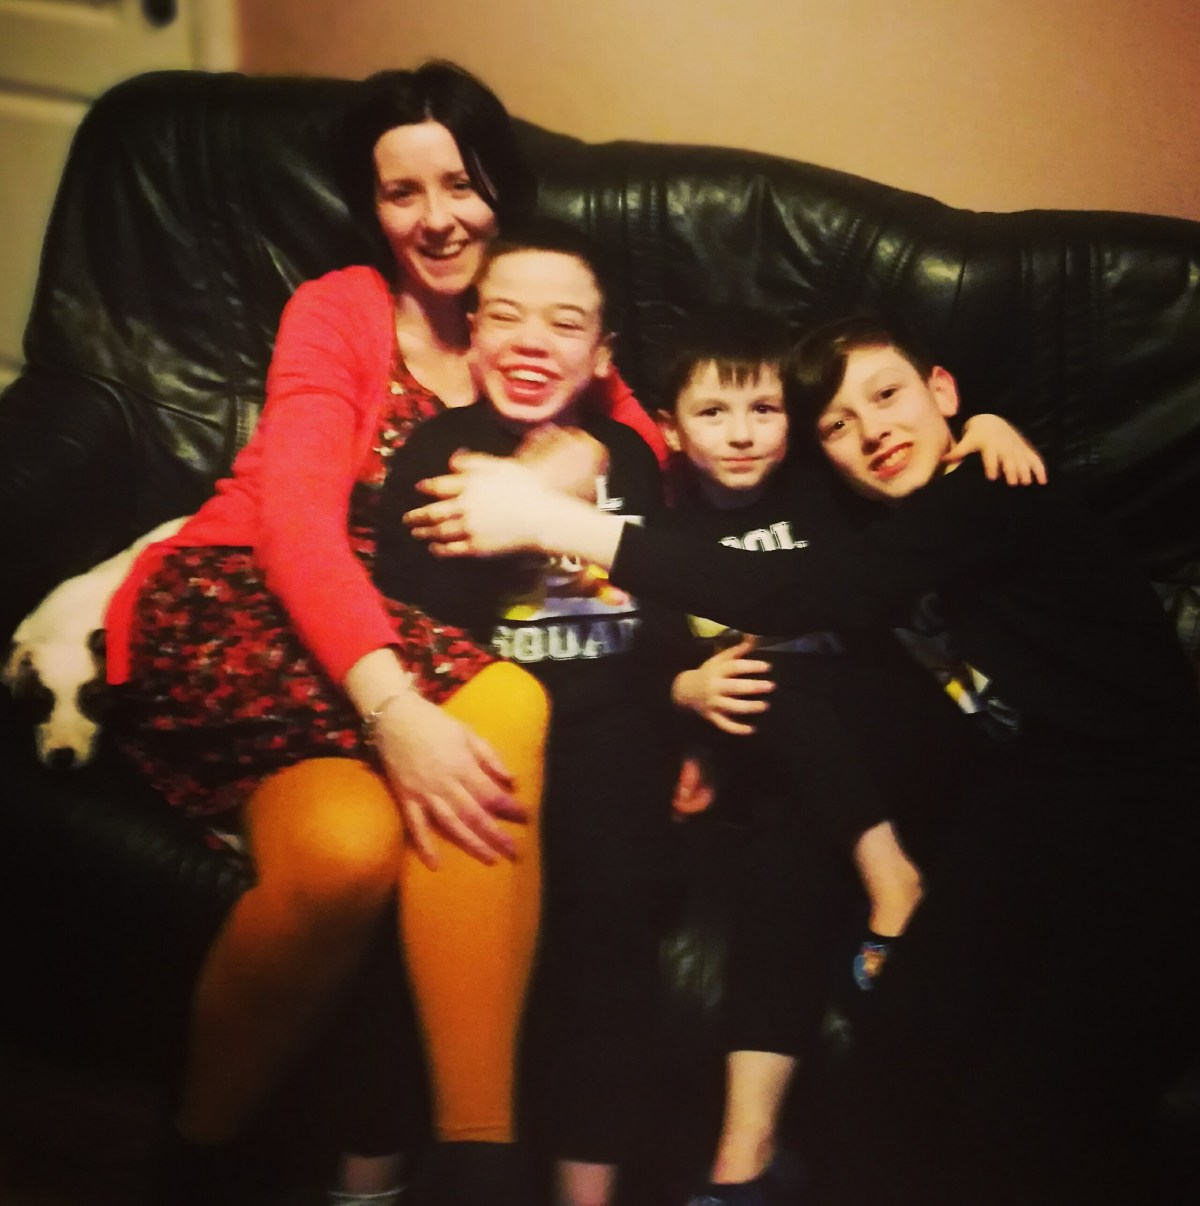 Parenting in my shoes – My child has a life-limiting disease